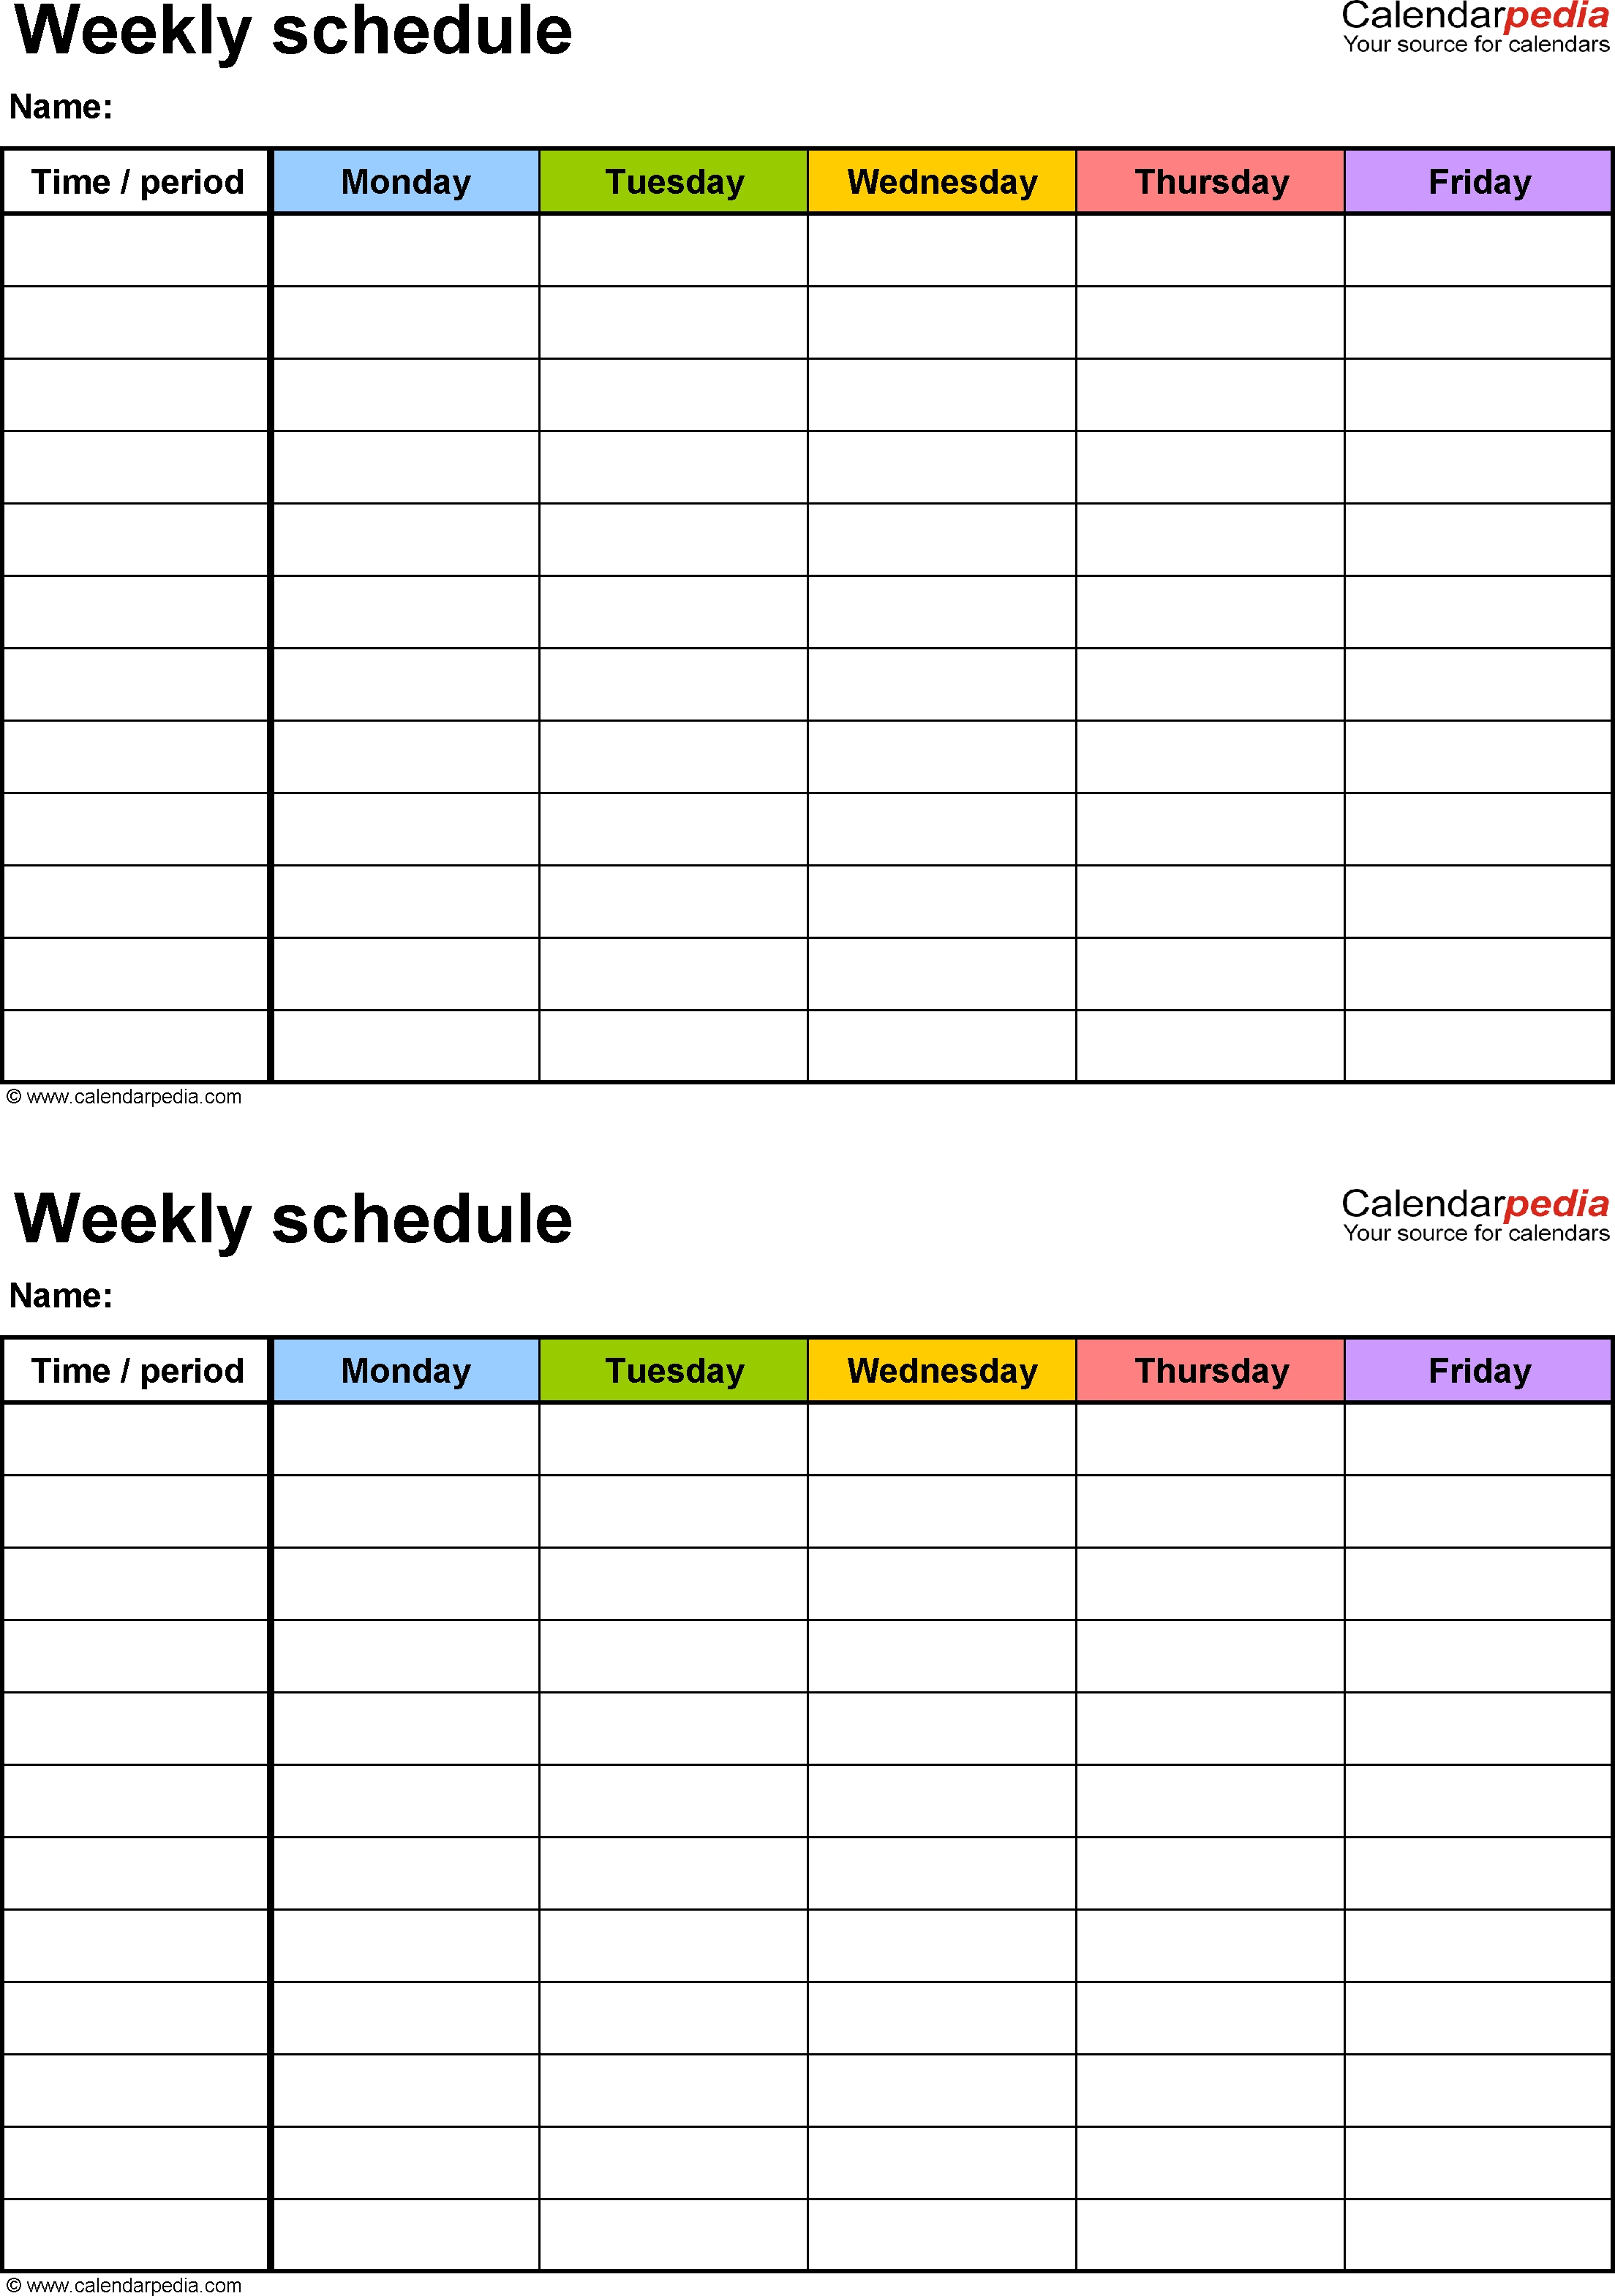 Weekly Schedule Template For Excel Version 3: 2 Schedules On One with Monday Though Friday Timed Schedule